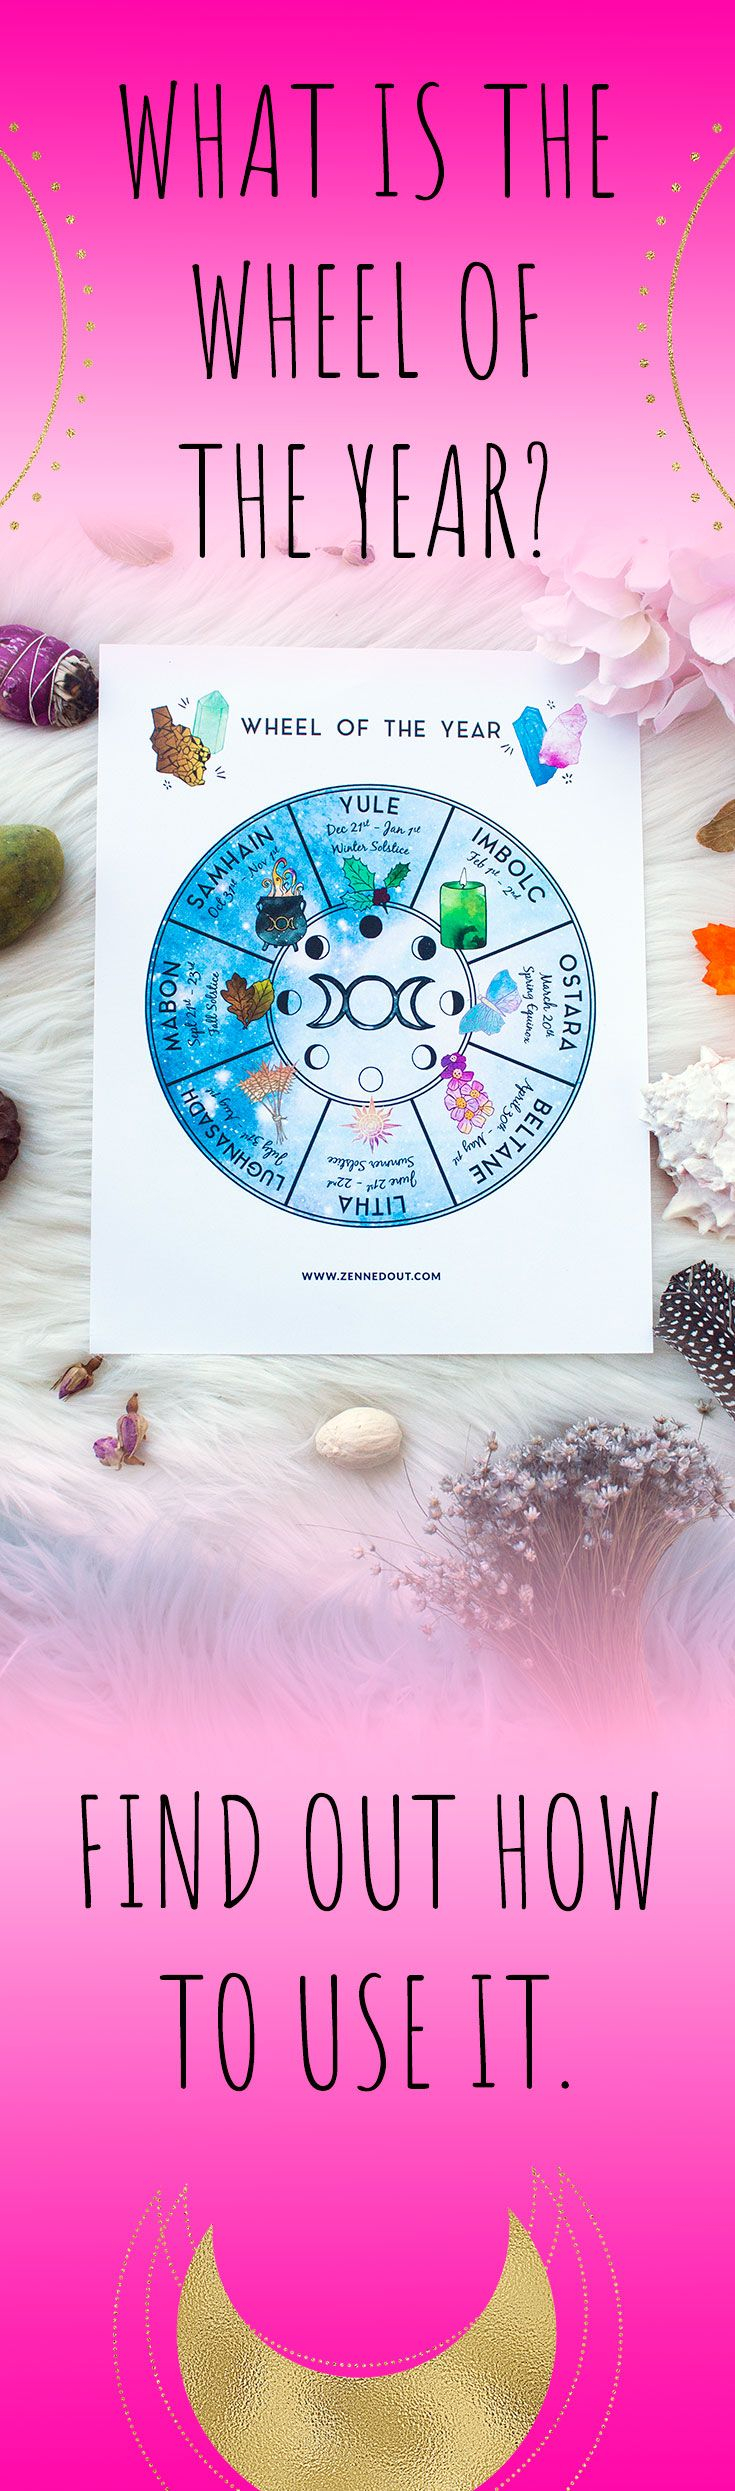 Tune Yourself To The Natural Rhythms Of Gaia With The Wheel